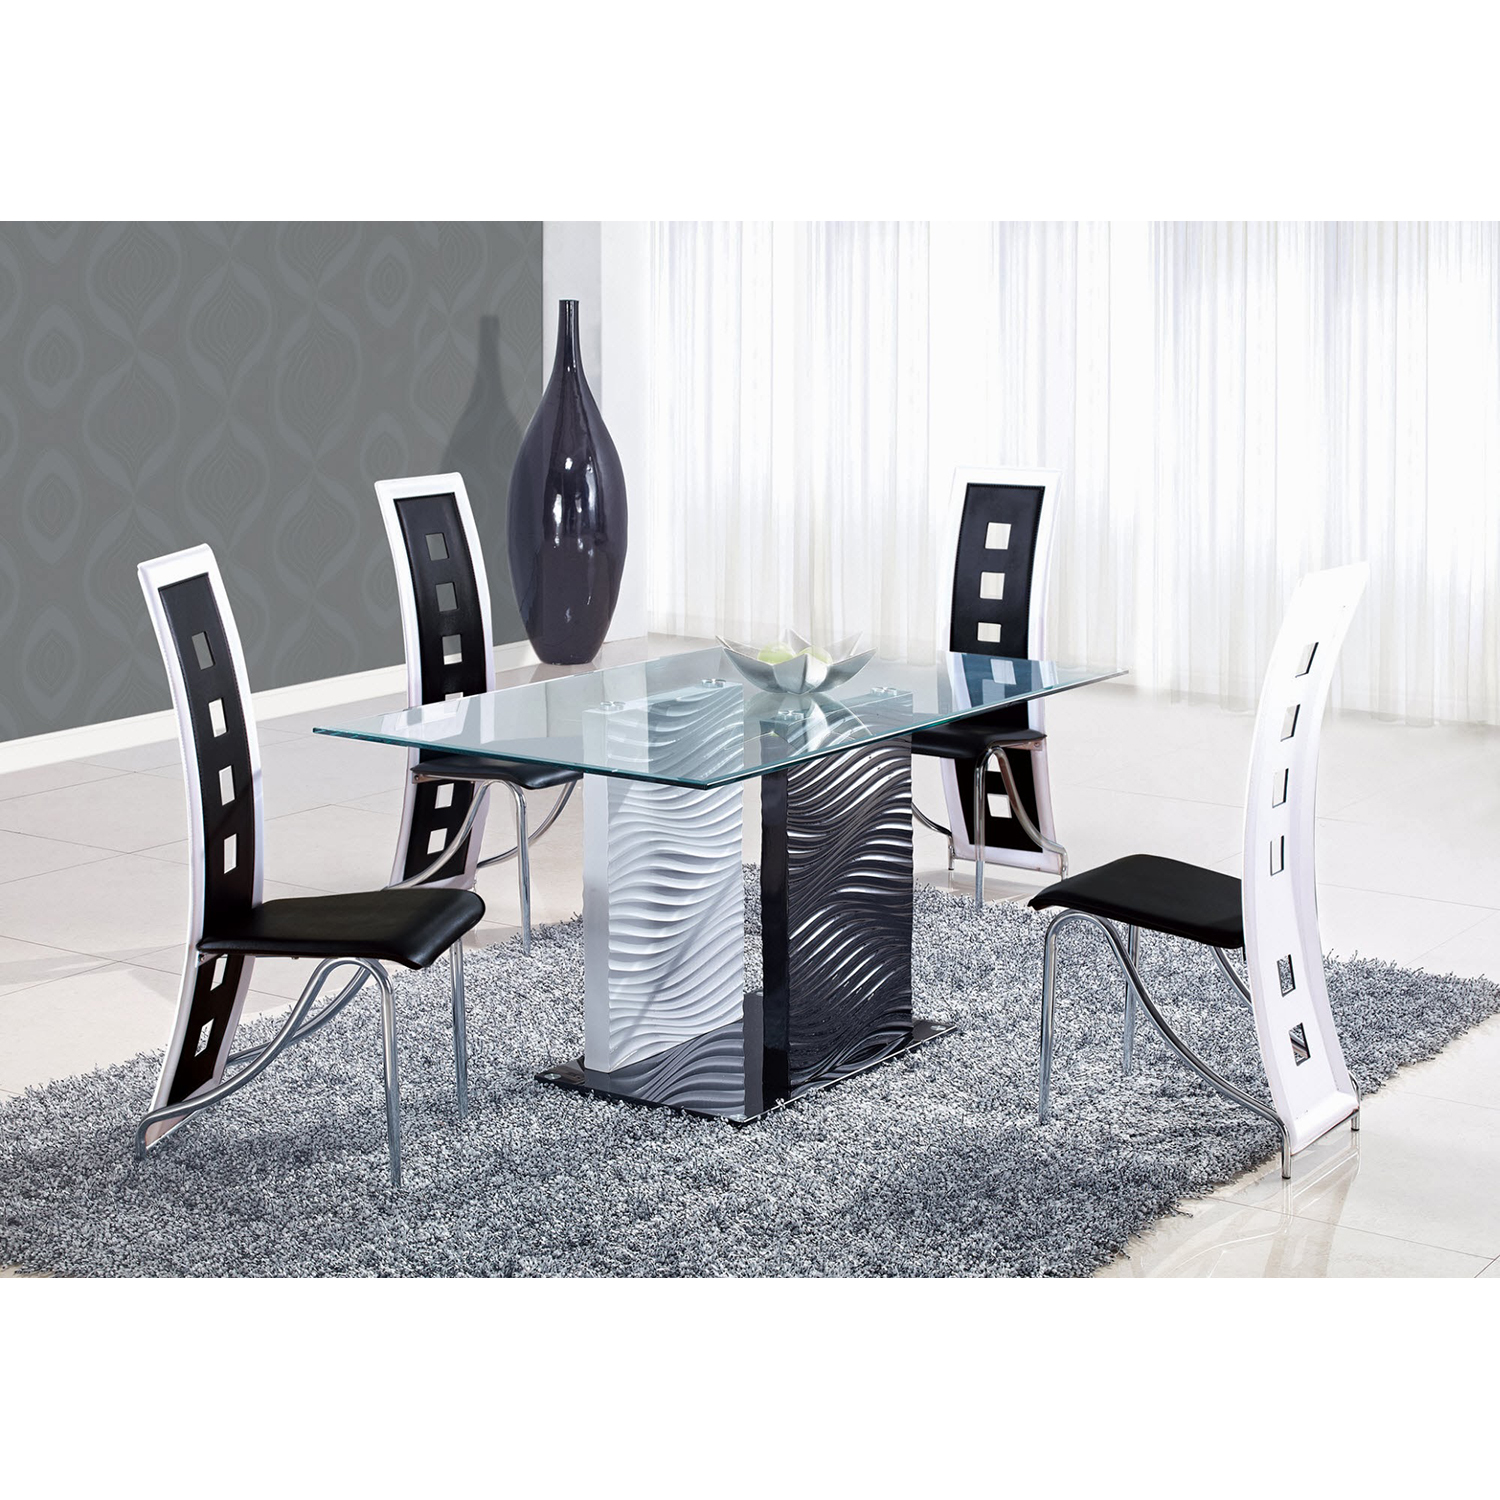 Dining Chair Black with White Trim - GLO-D803DC-BL-M